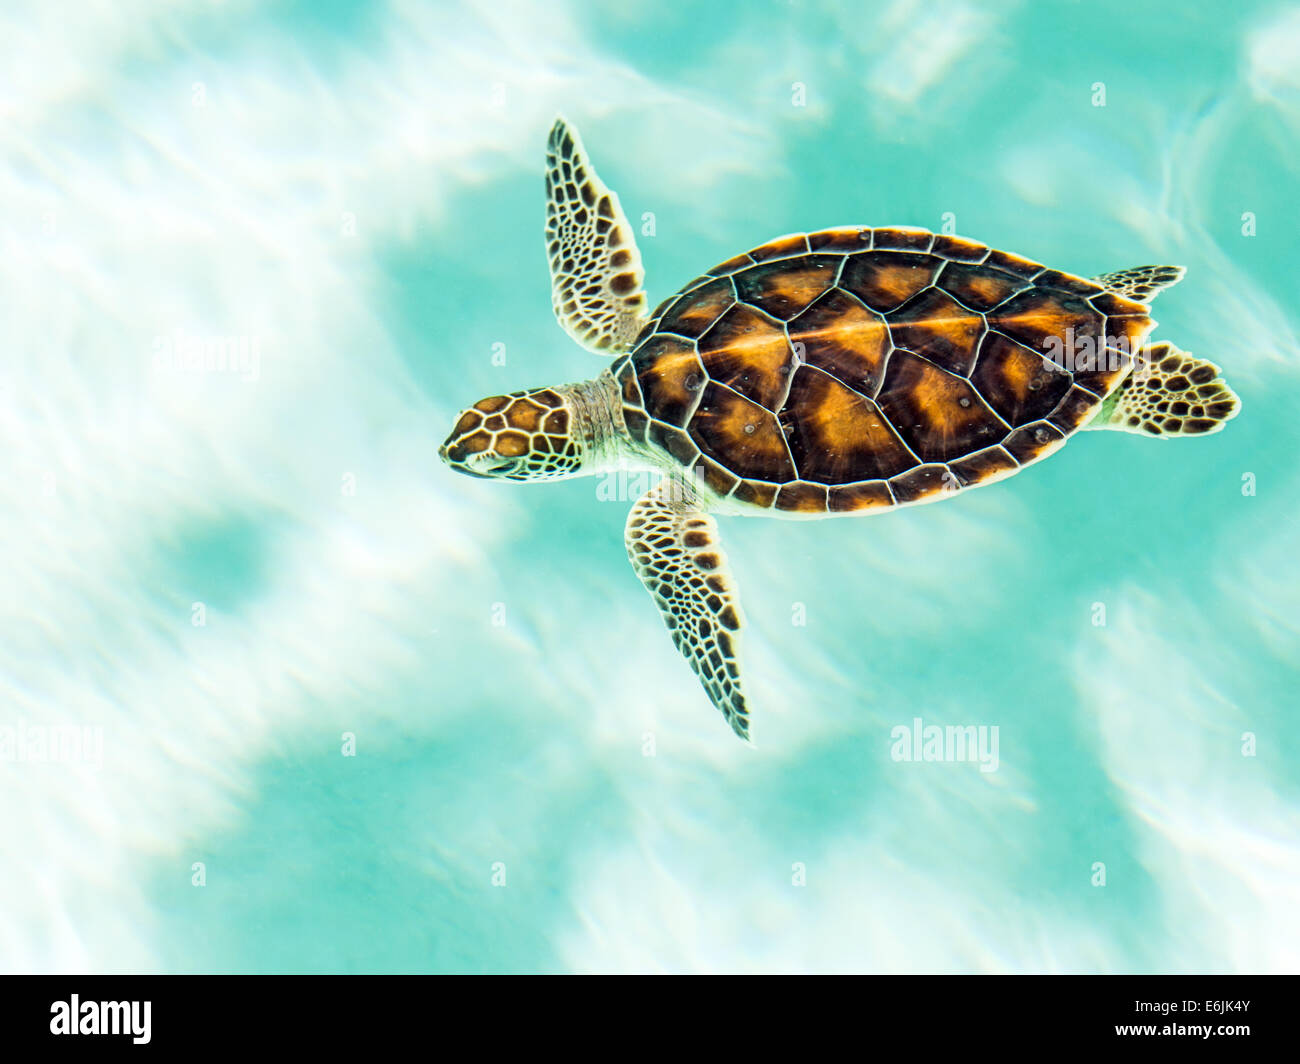 Cute endangered baby turtle swimming in turquoise water Stock Photo